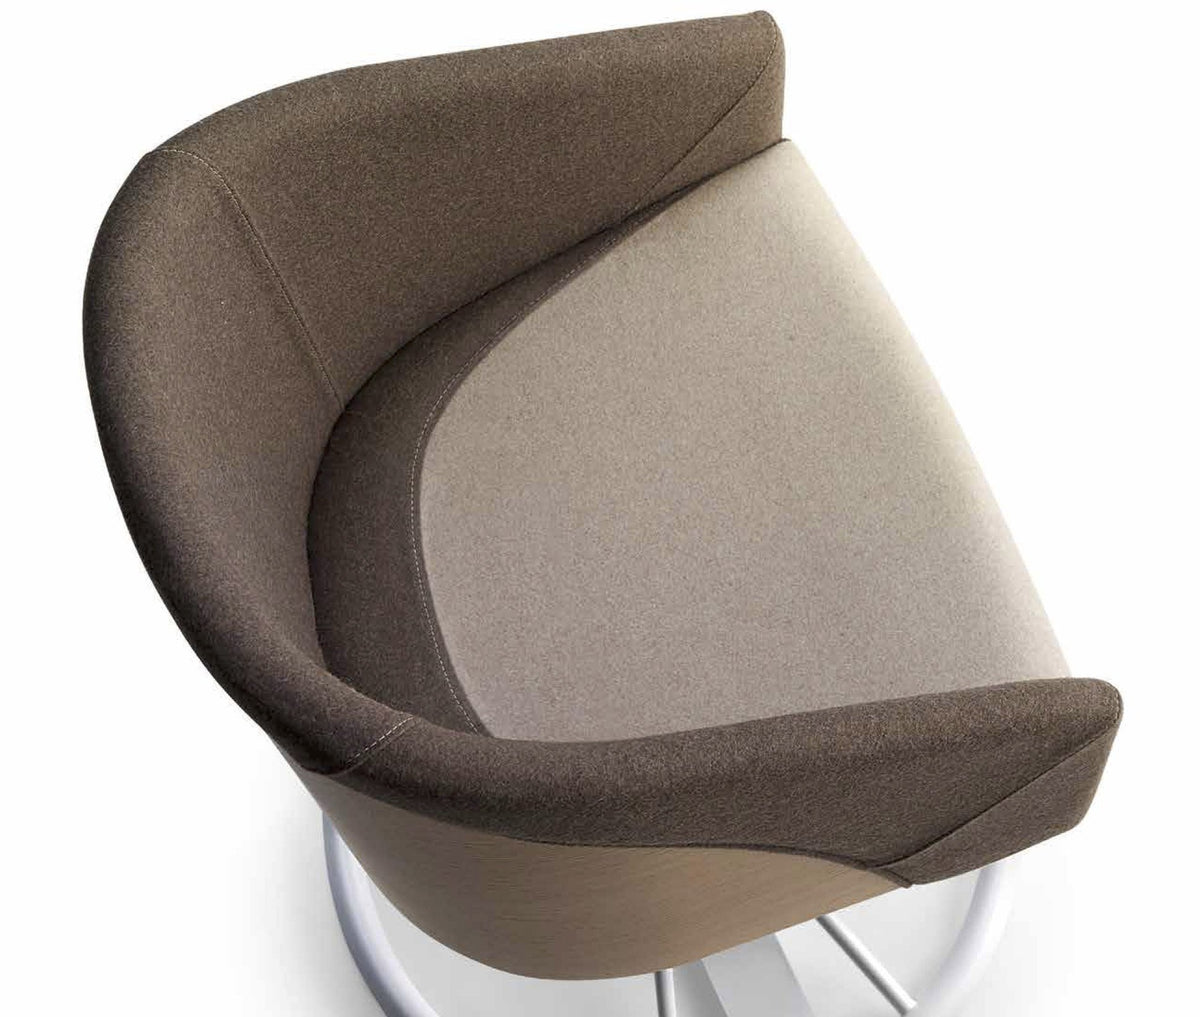 Cougar Lounge Chair c/w Swivel Base-Laco-Contract Furniture Store